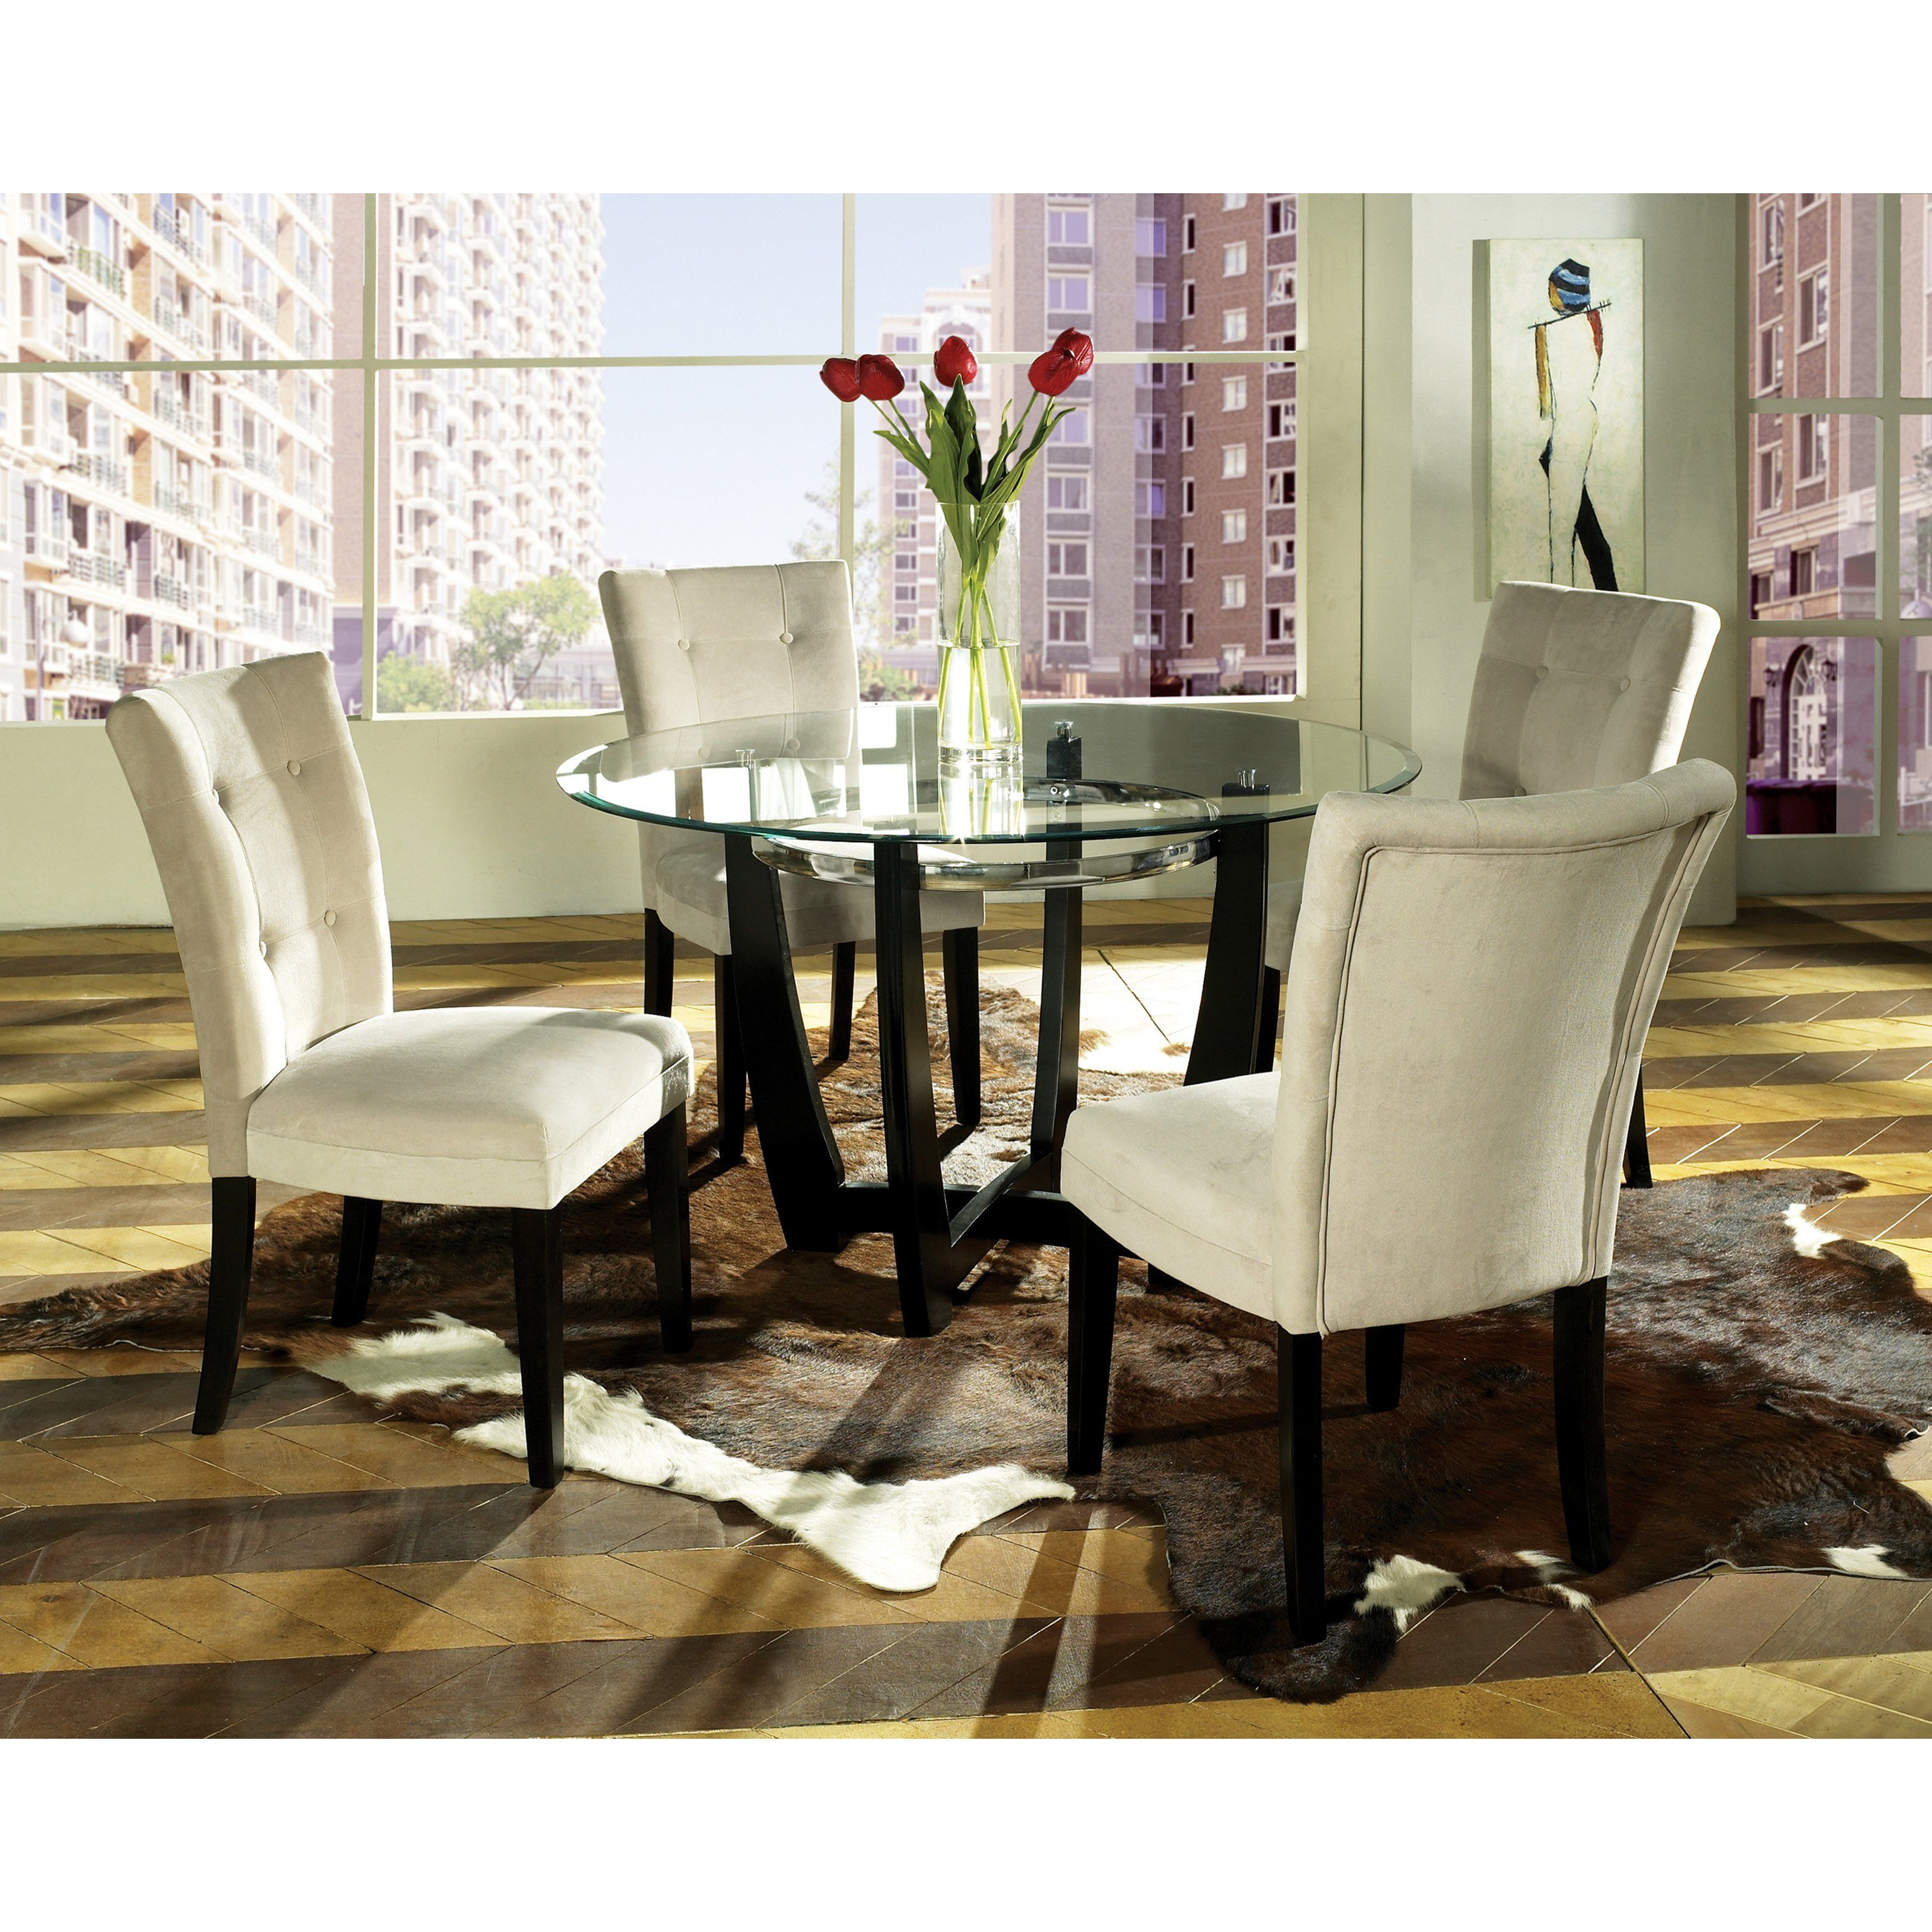 Steve silver matinee 5 piece glass dining table set contemporary design gets a little cozy in the steve silver matinee 5 pc glass dining table set